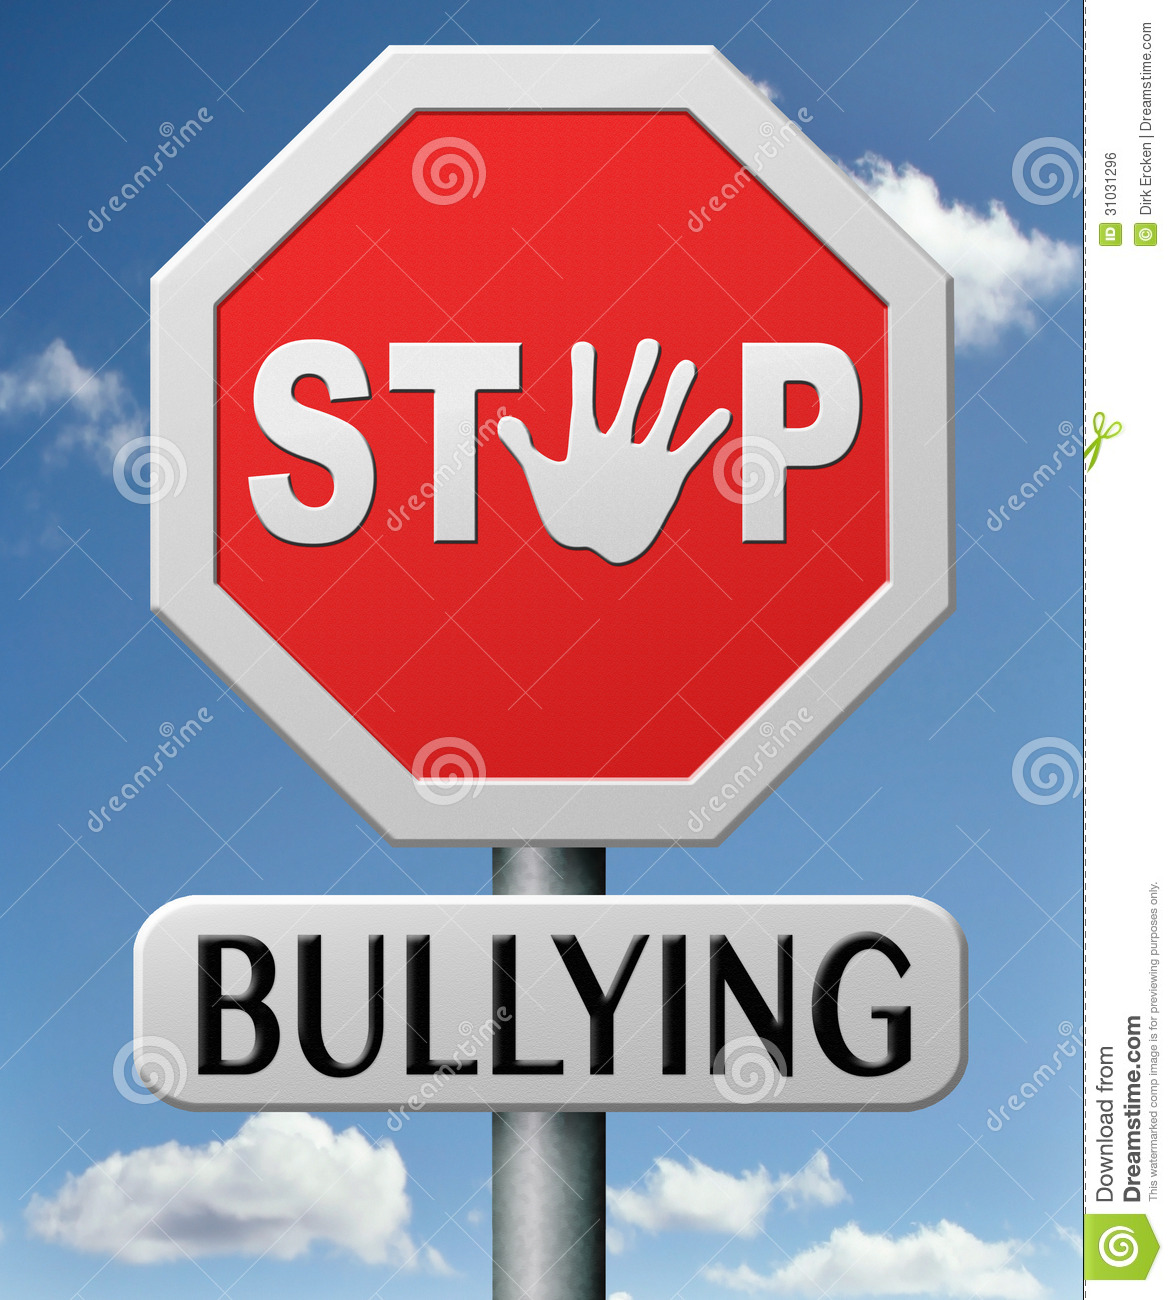 Bullying At School Clipart Stop bullying clipart - clipart kid